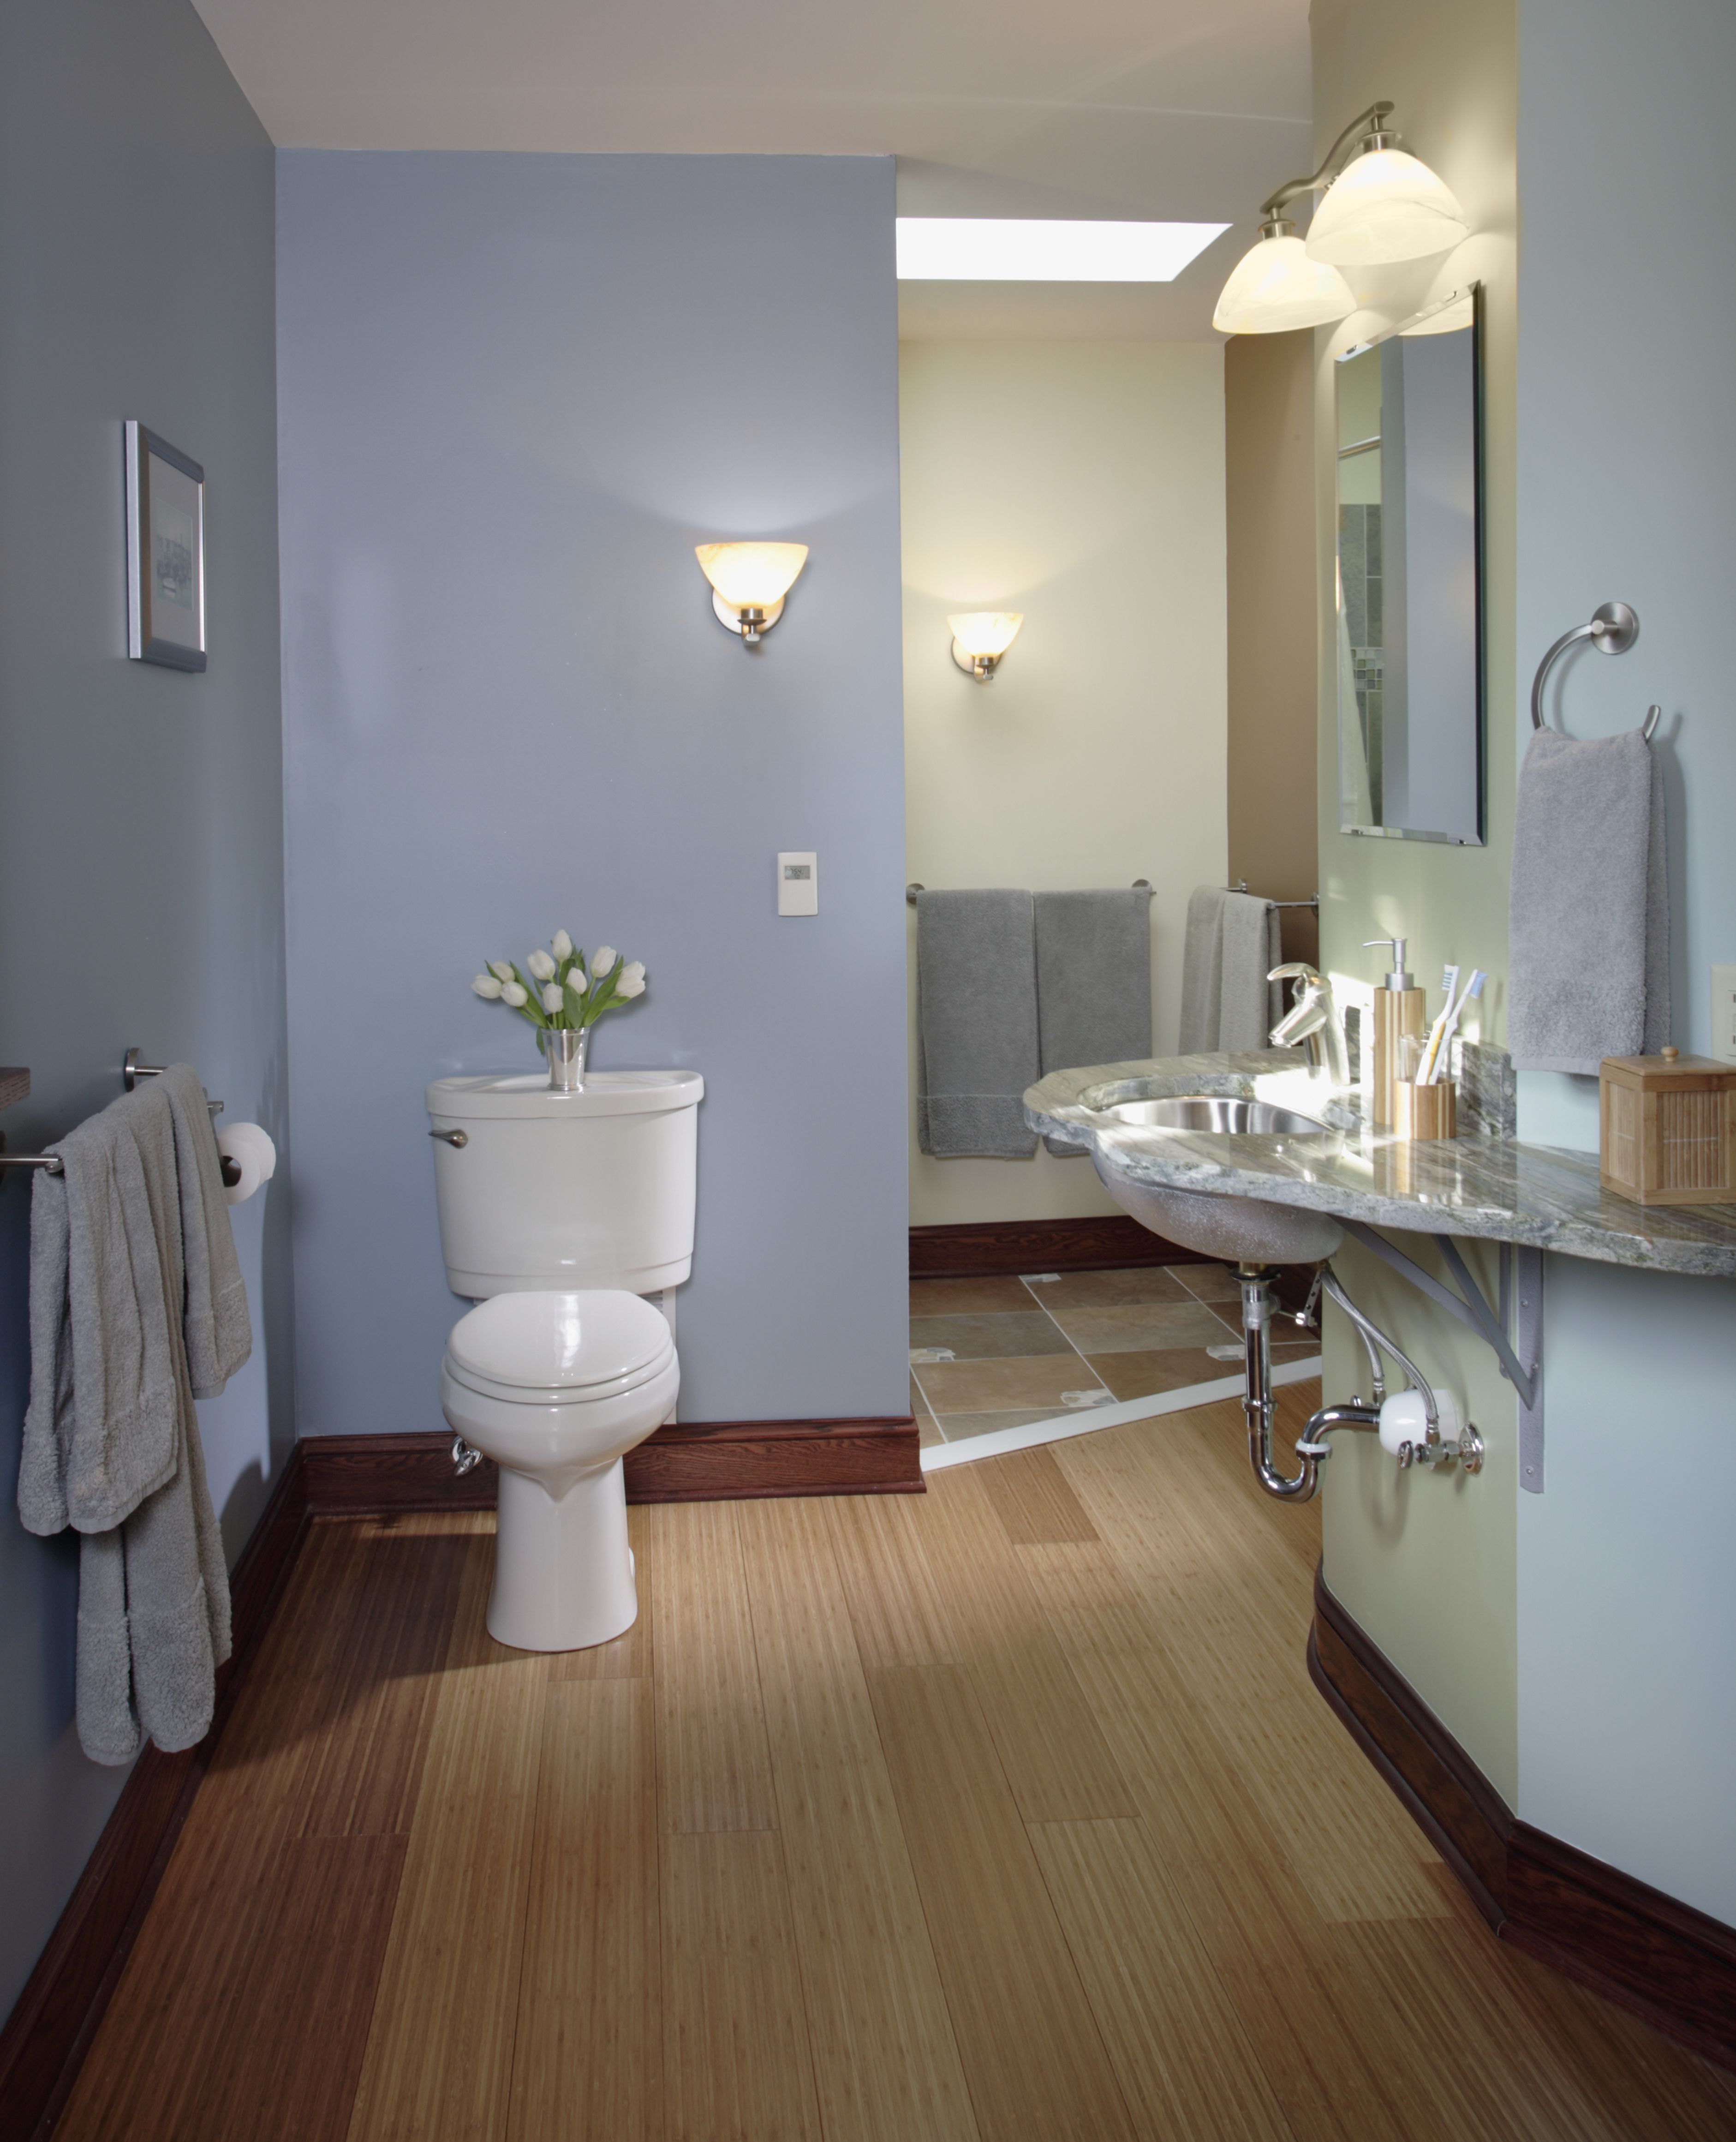 How to install a soap dish on ceramic tile how to install a basement bathroom tile flooring doublecrazyfo Images